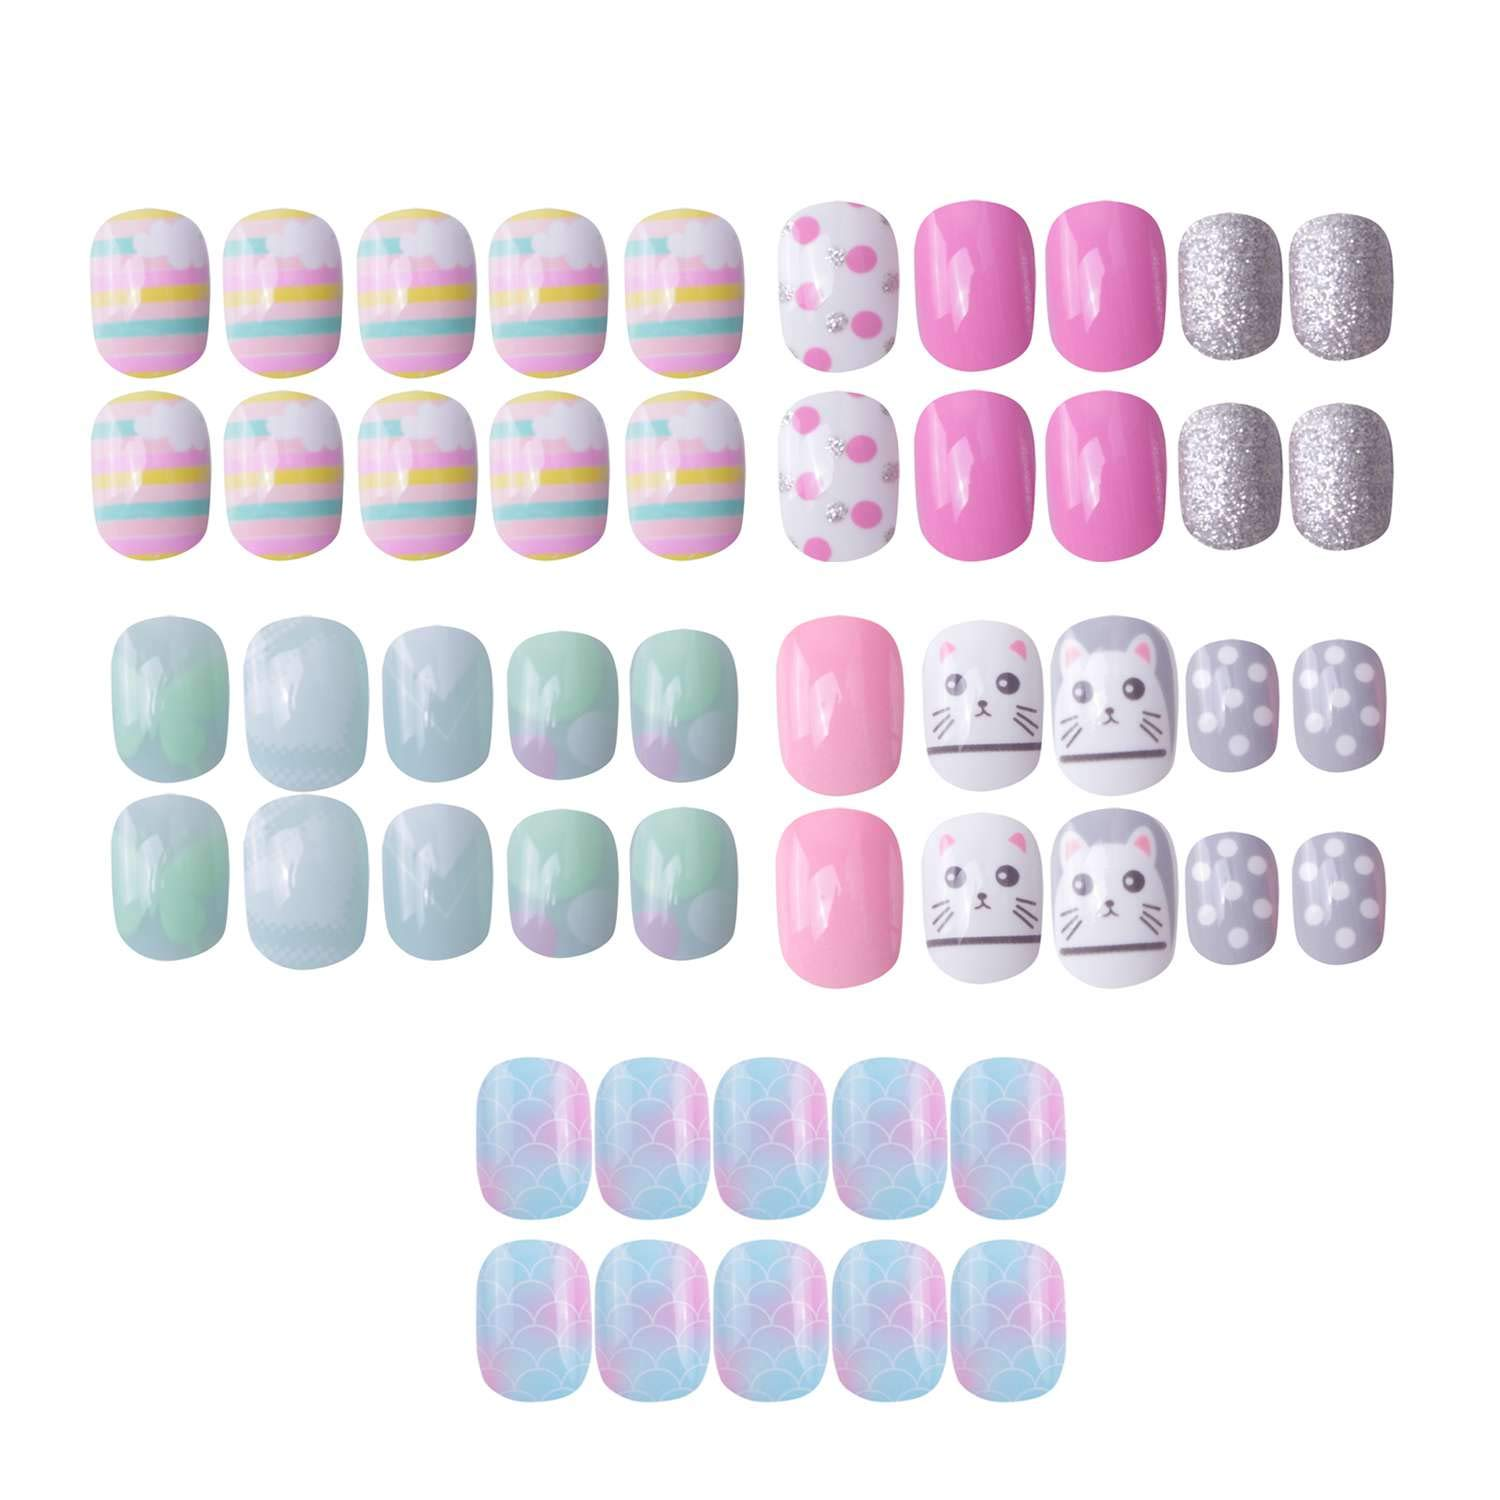 120 pcs 5 Pack Children Nails Press on Pre-glue Full Cover Short Blue Pink Gradient False Nail Kits Great Christmas Gift for Kids Little Girls by SIUSIO